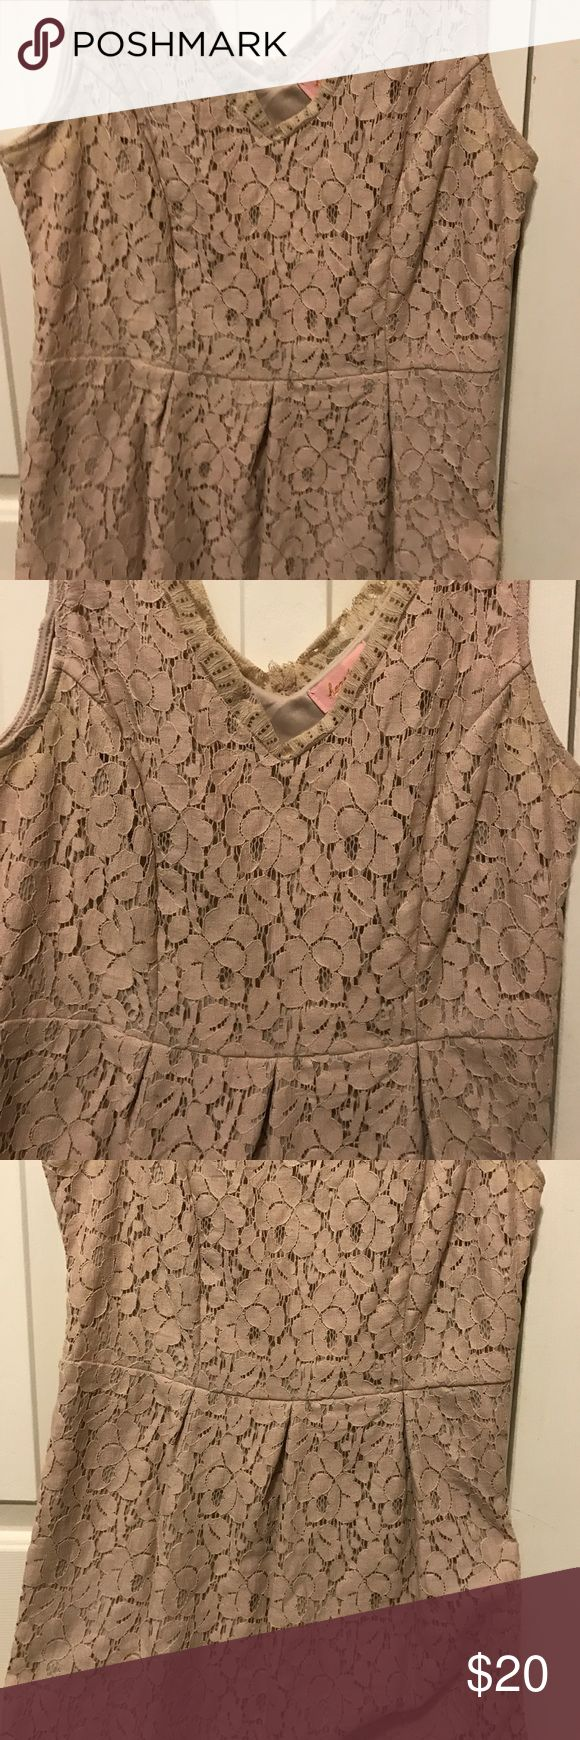 Tan Lace Dress with Lining Tan floral Lace Boho Dress. Size M. Has lining underneath! Dresses